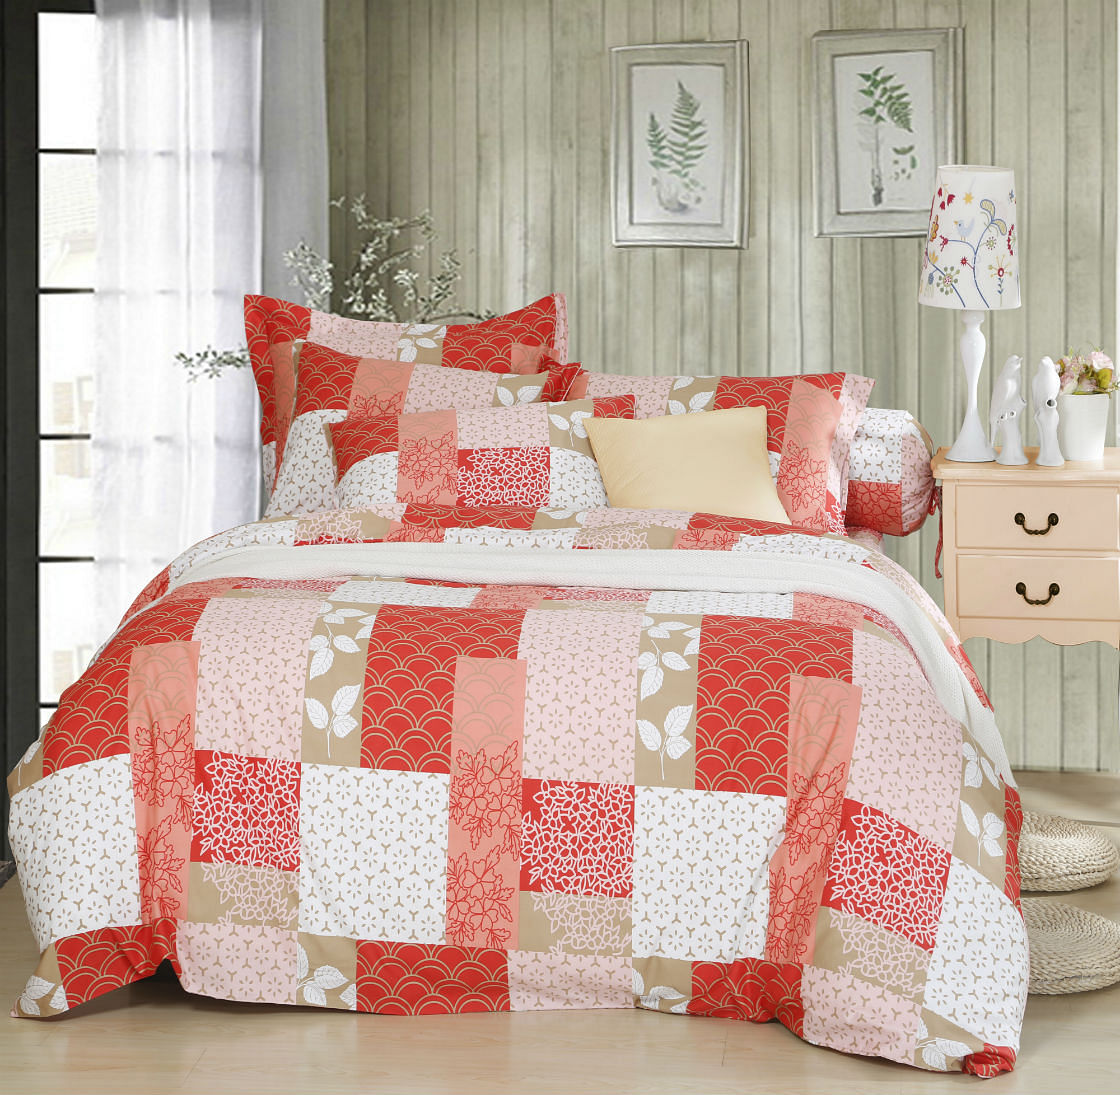 New bedlinen brand for trendy and affordable designs for Cheap funky home accessories